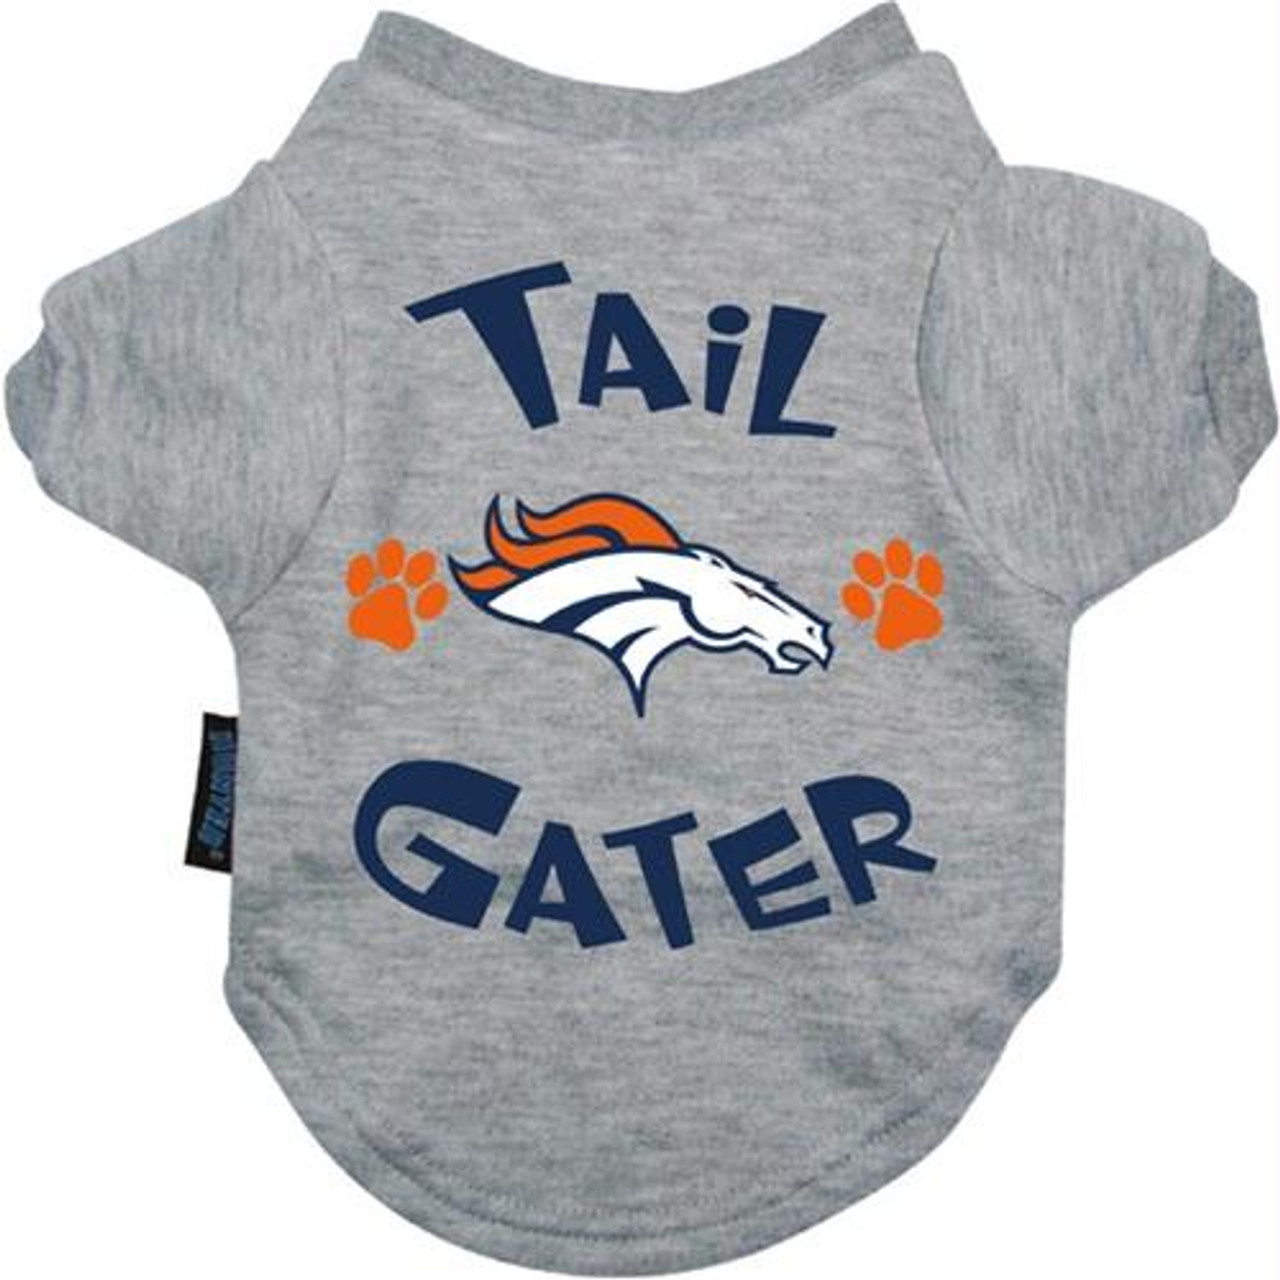 new product 9e171 307ef Denver Broncos Tail Gater Tee Shirt